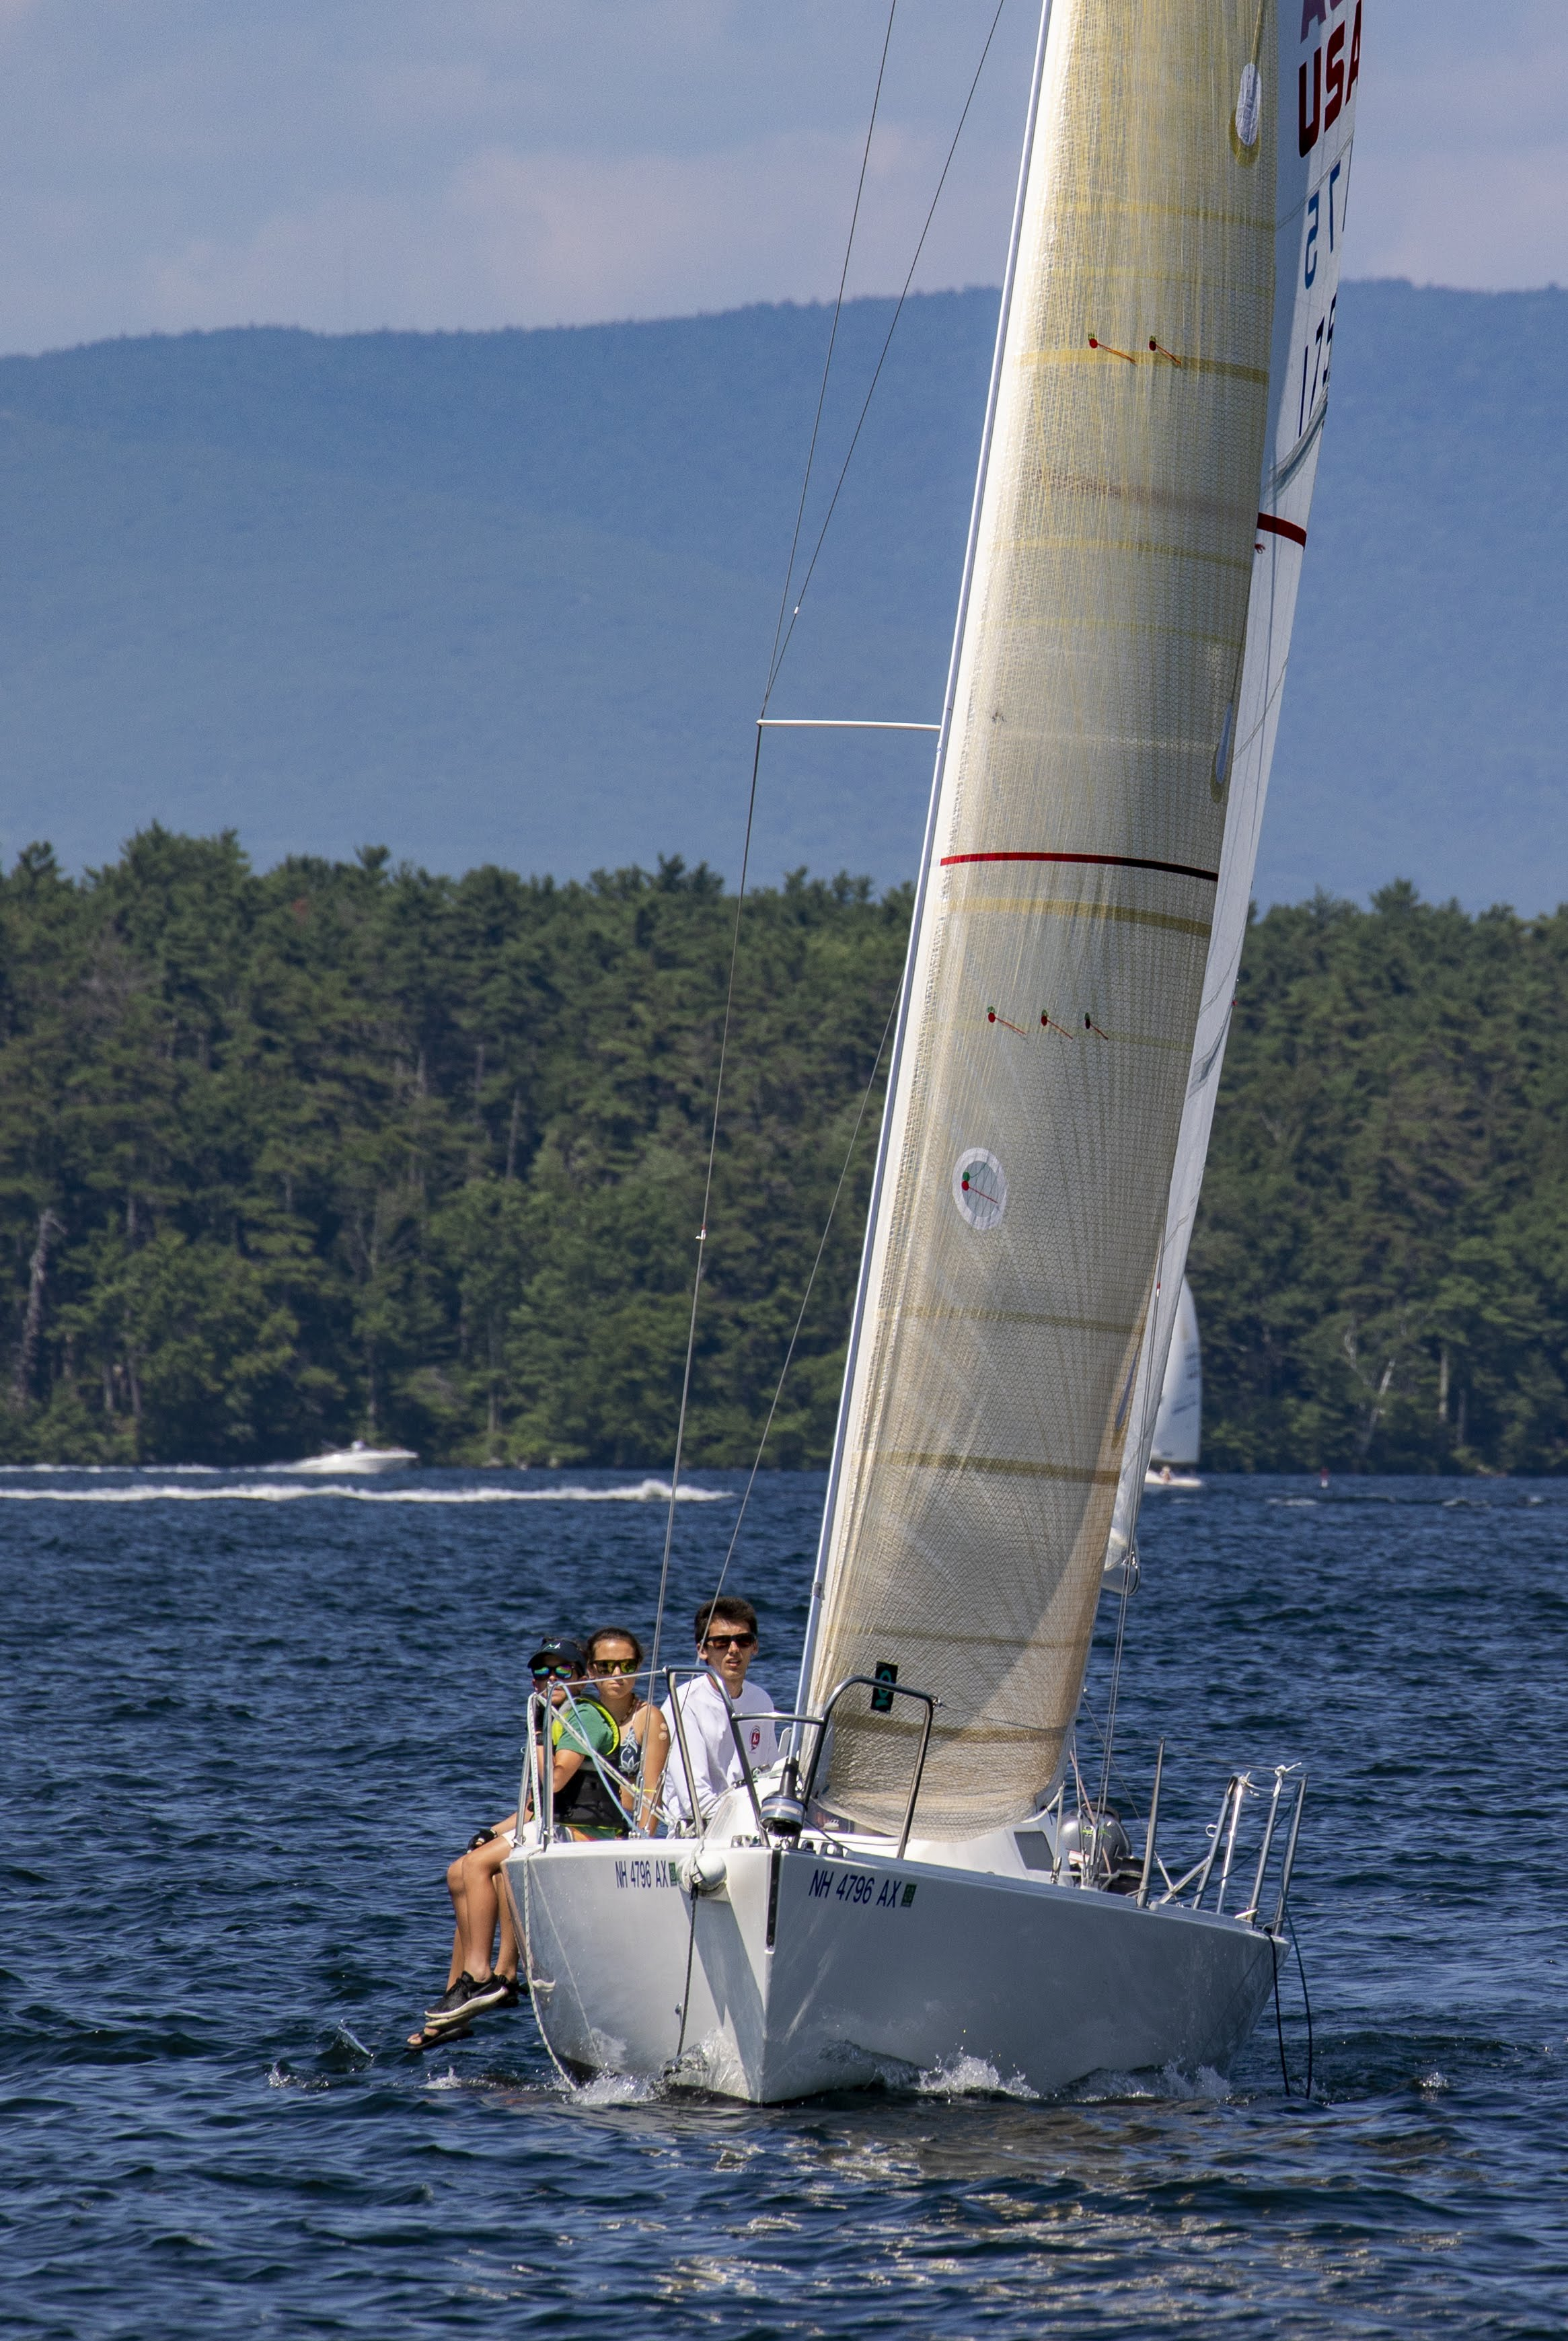 2019 07 13 143003 Regatta sail 175 ps